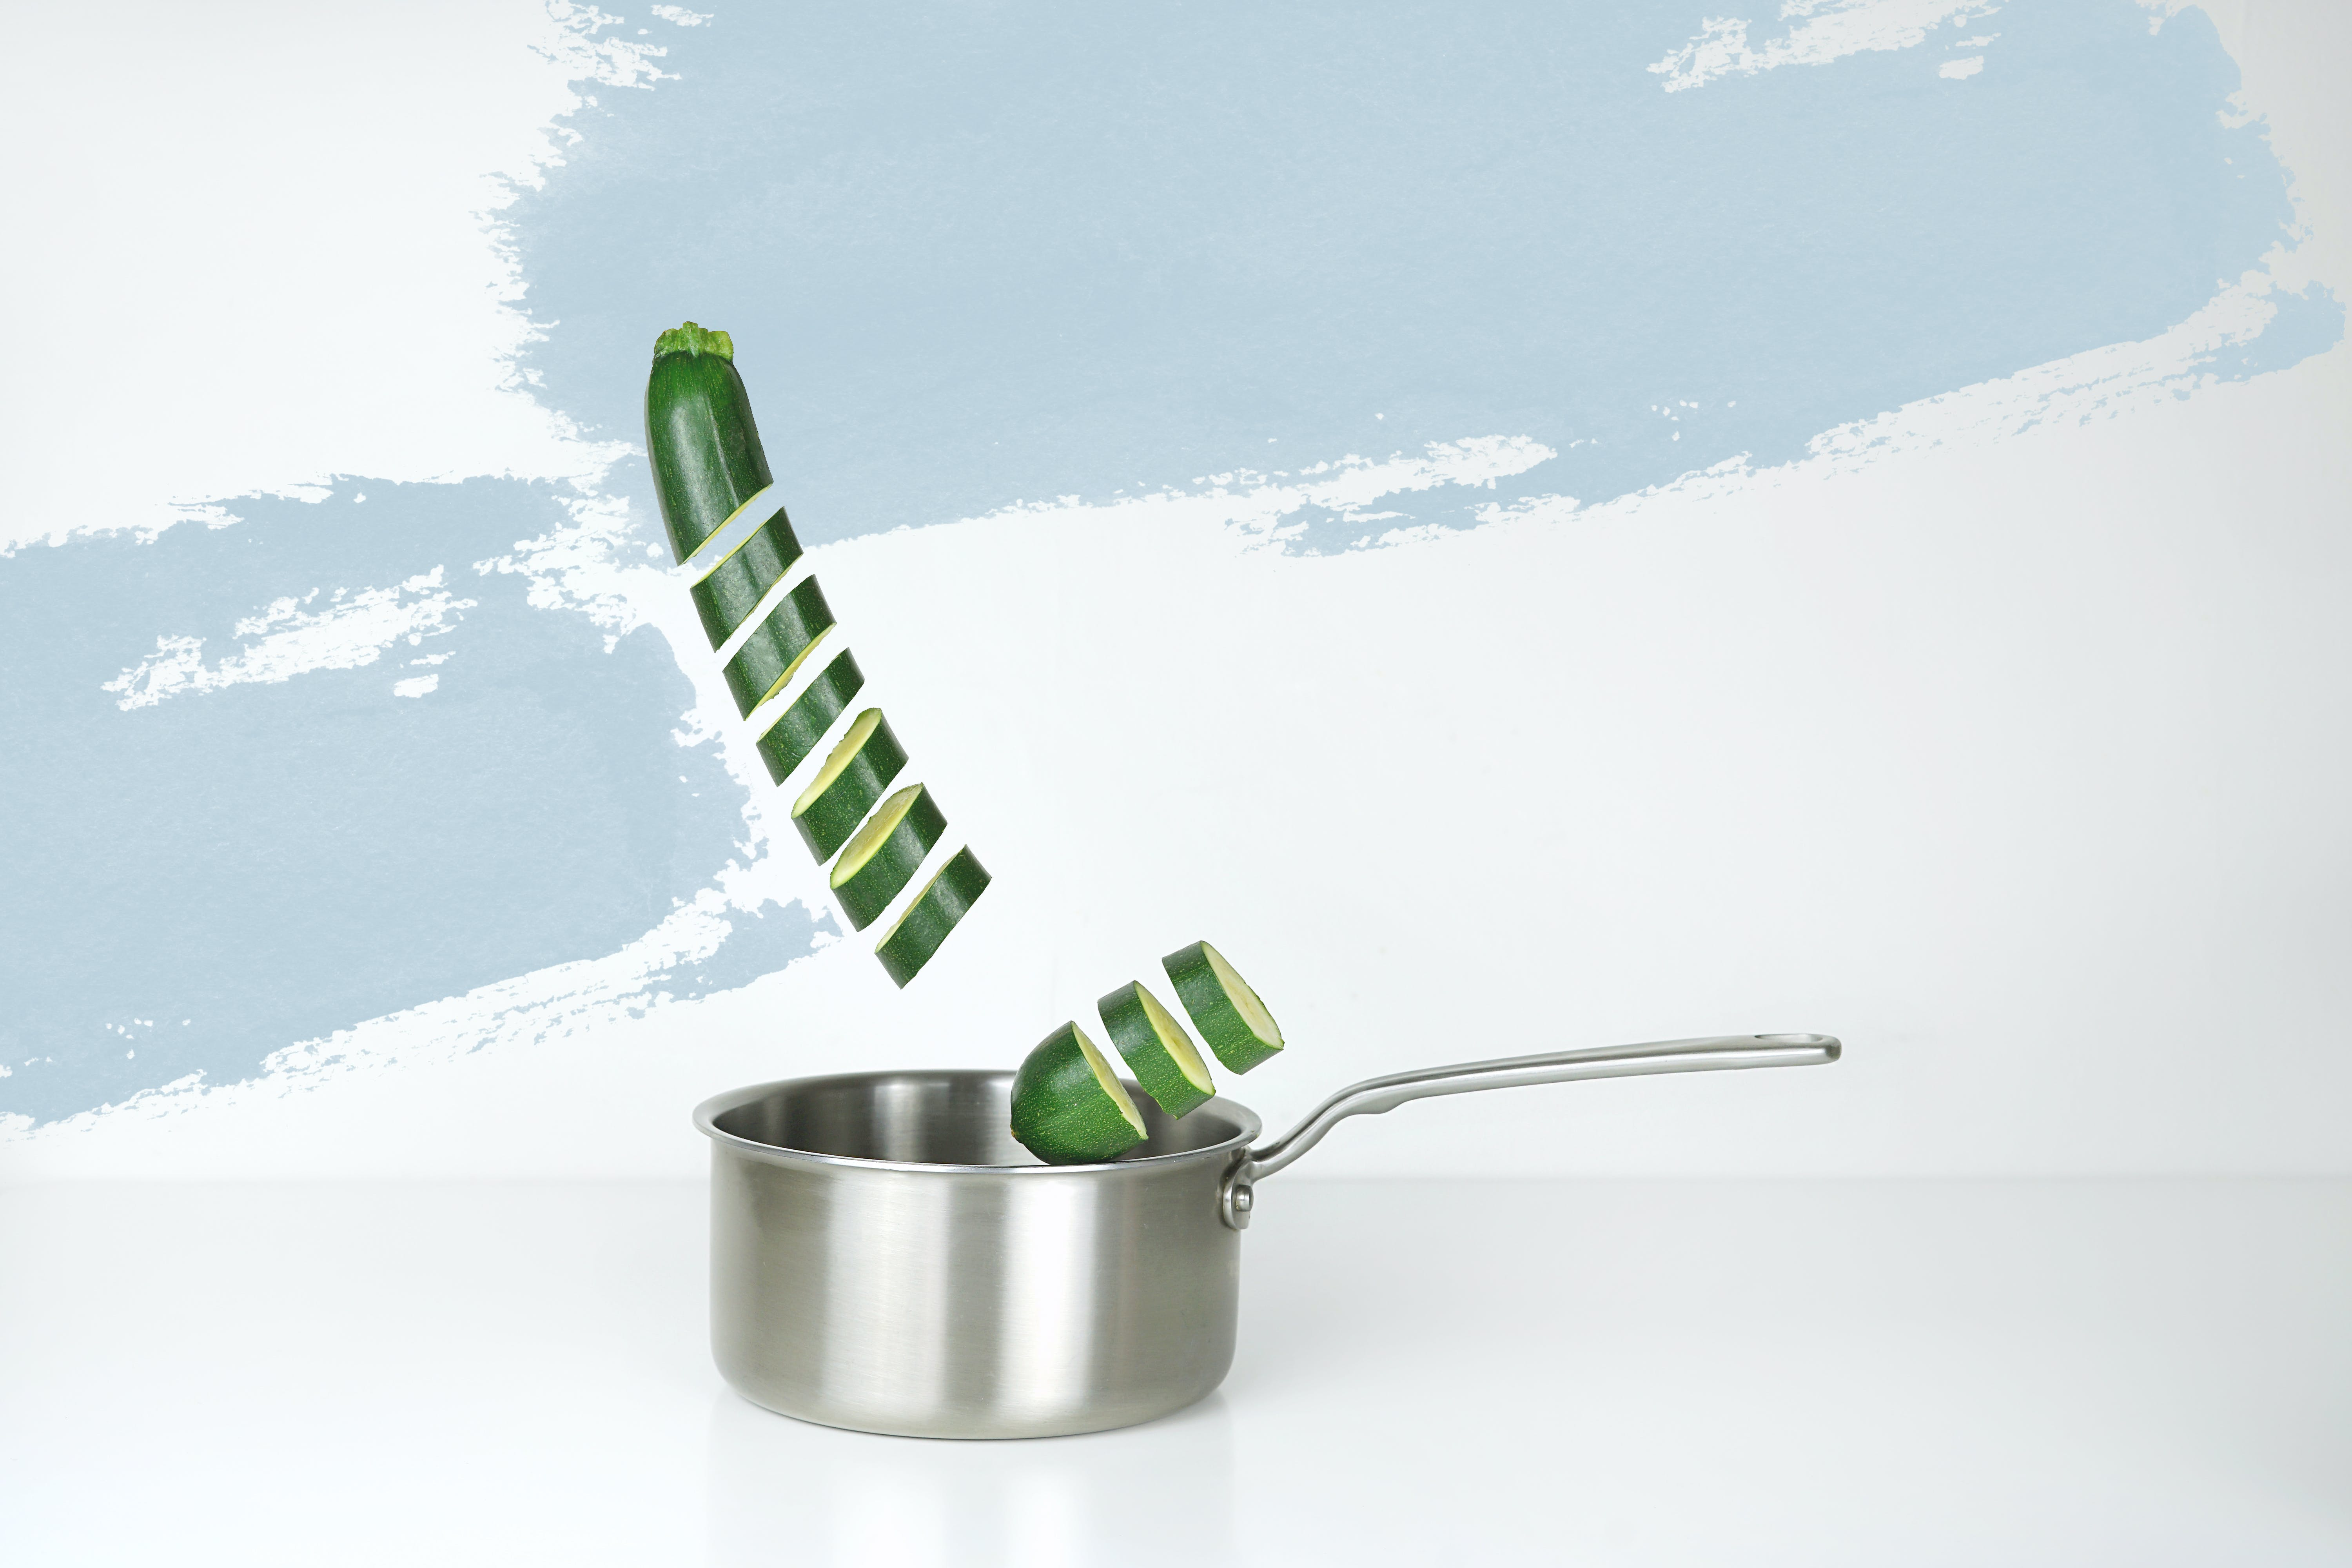 Gray Stainless Steel Sauce Pan and Green Cucumber Illustration